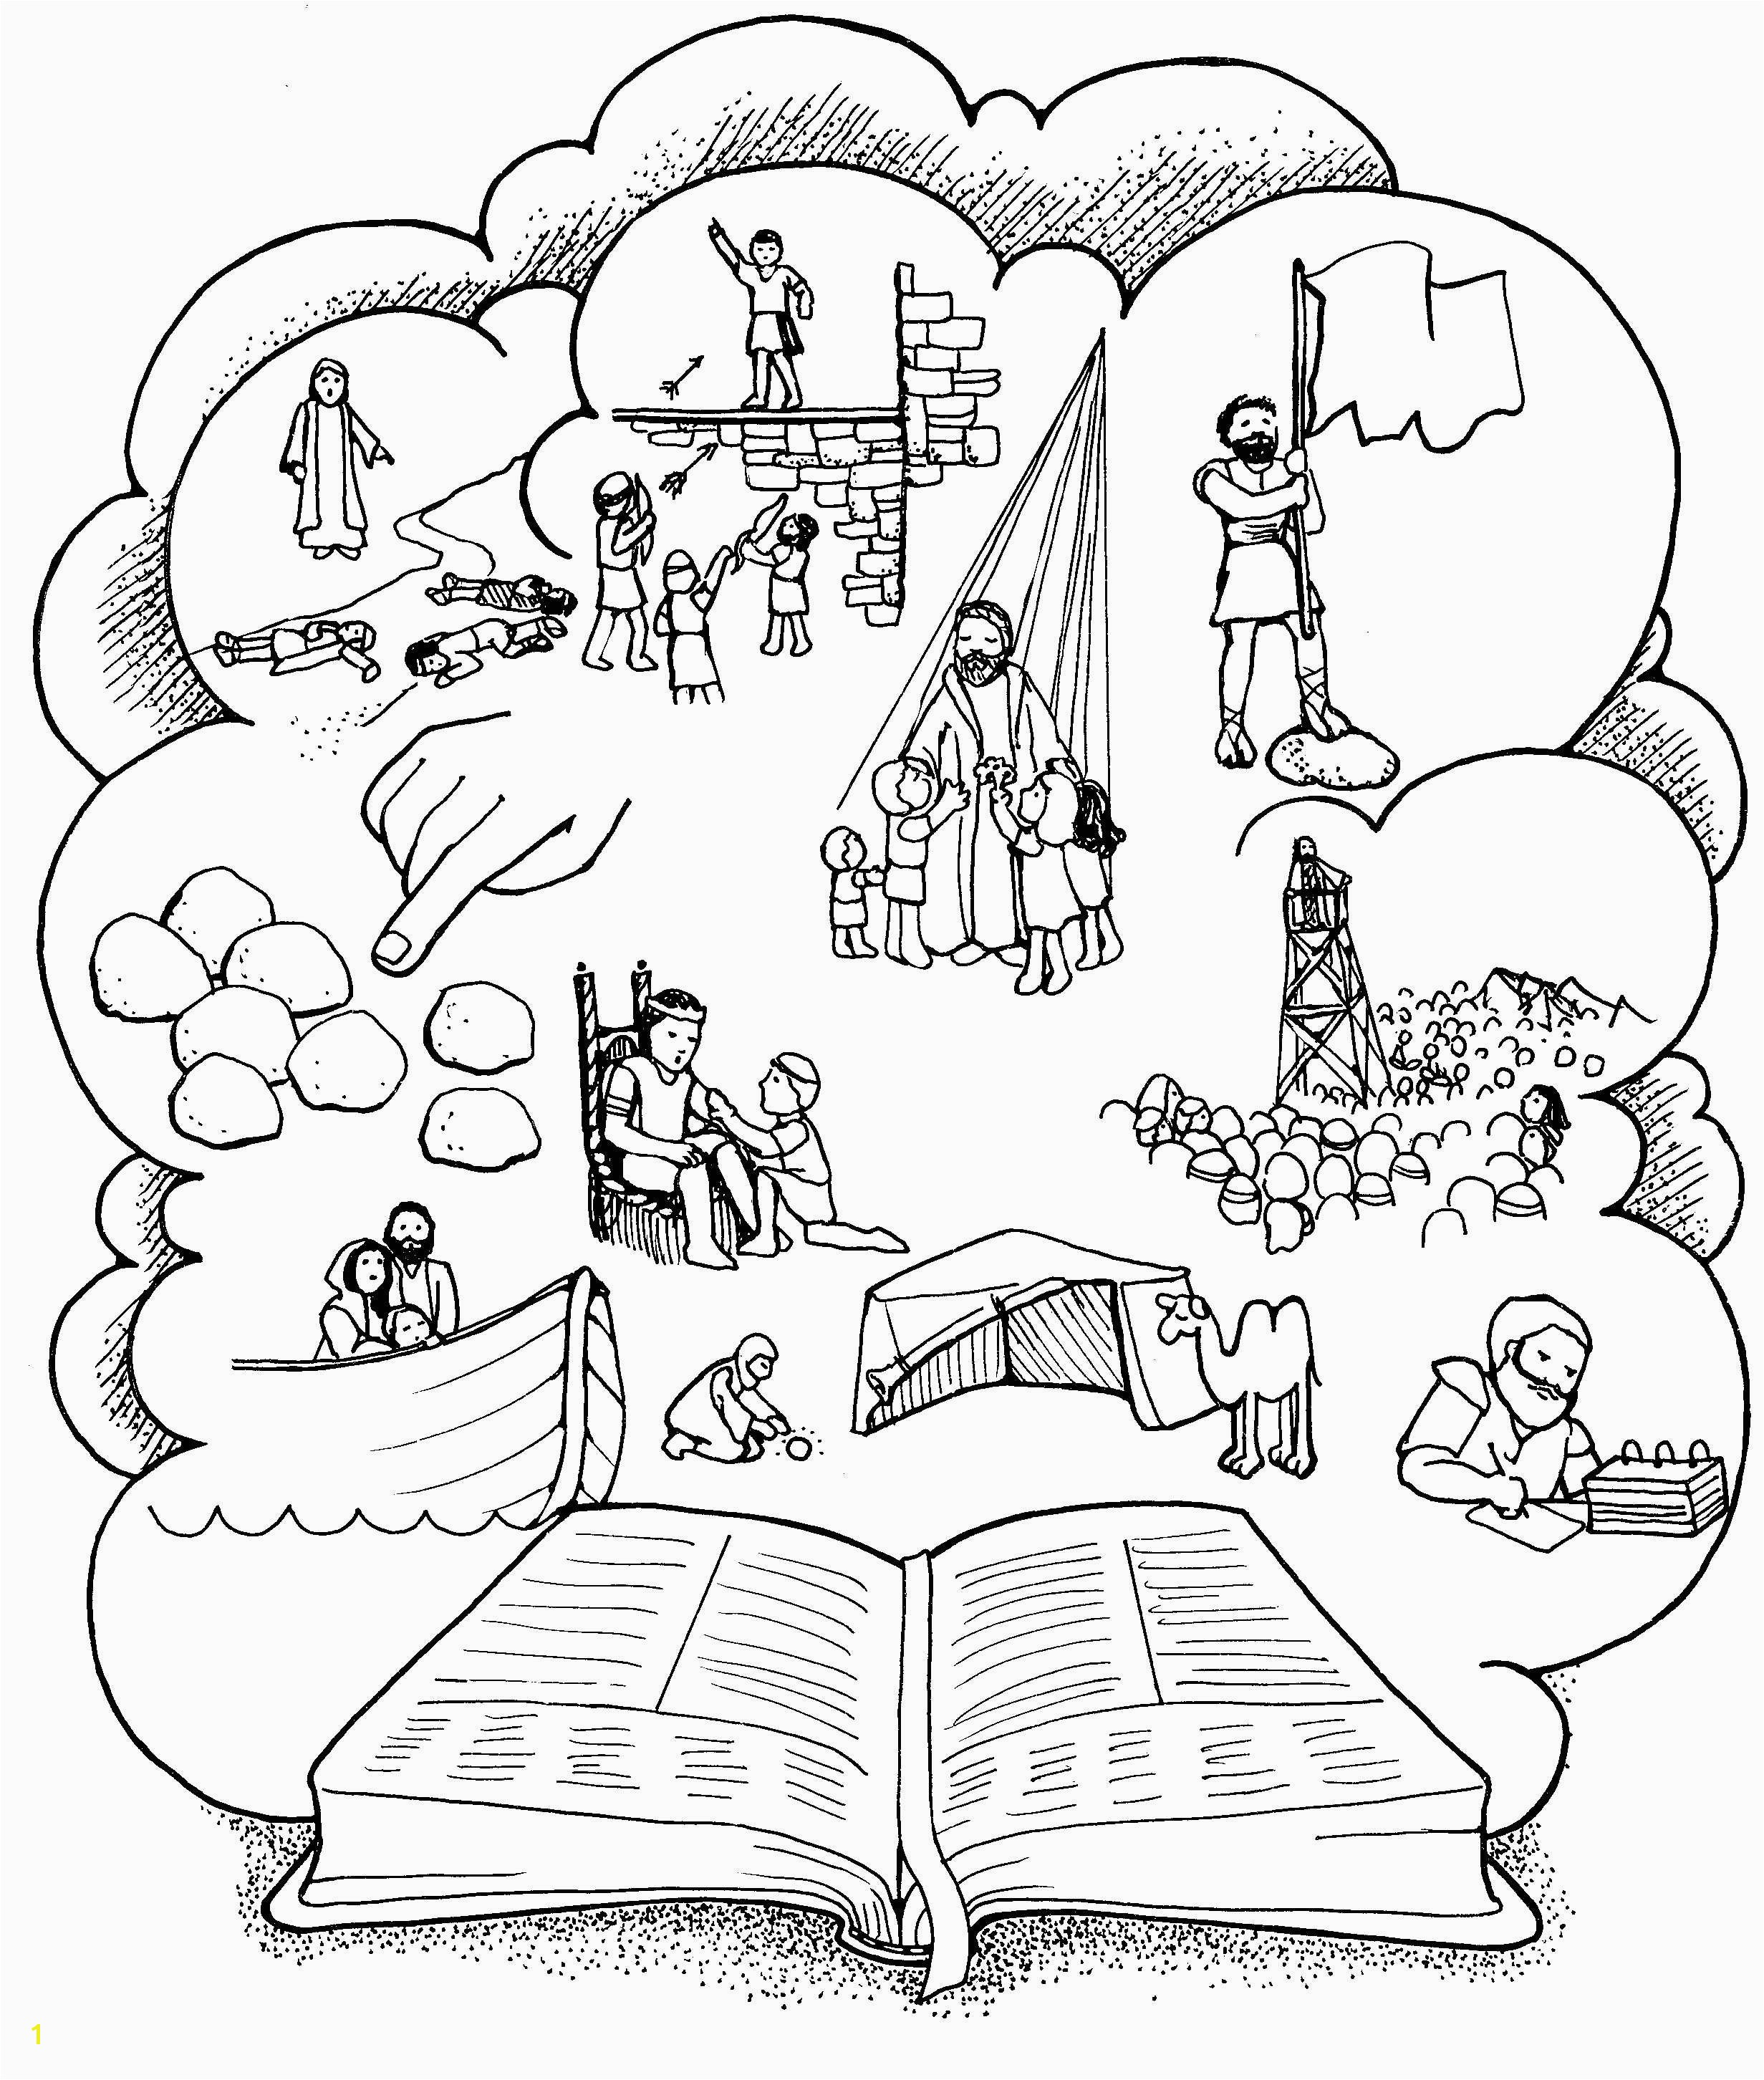 Kindergarten Coloring Pages Cool Coloring Page Unique Witch Coloring Pages New Crayola Pages 0d